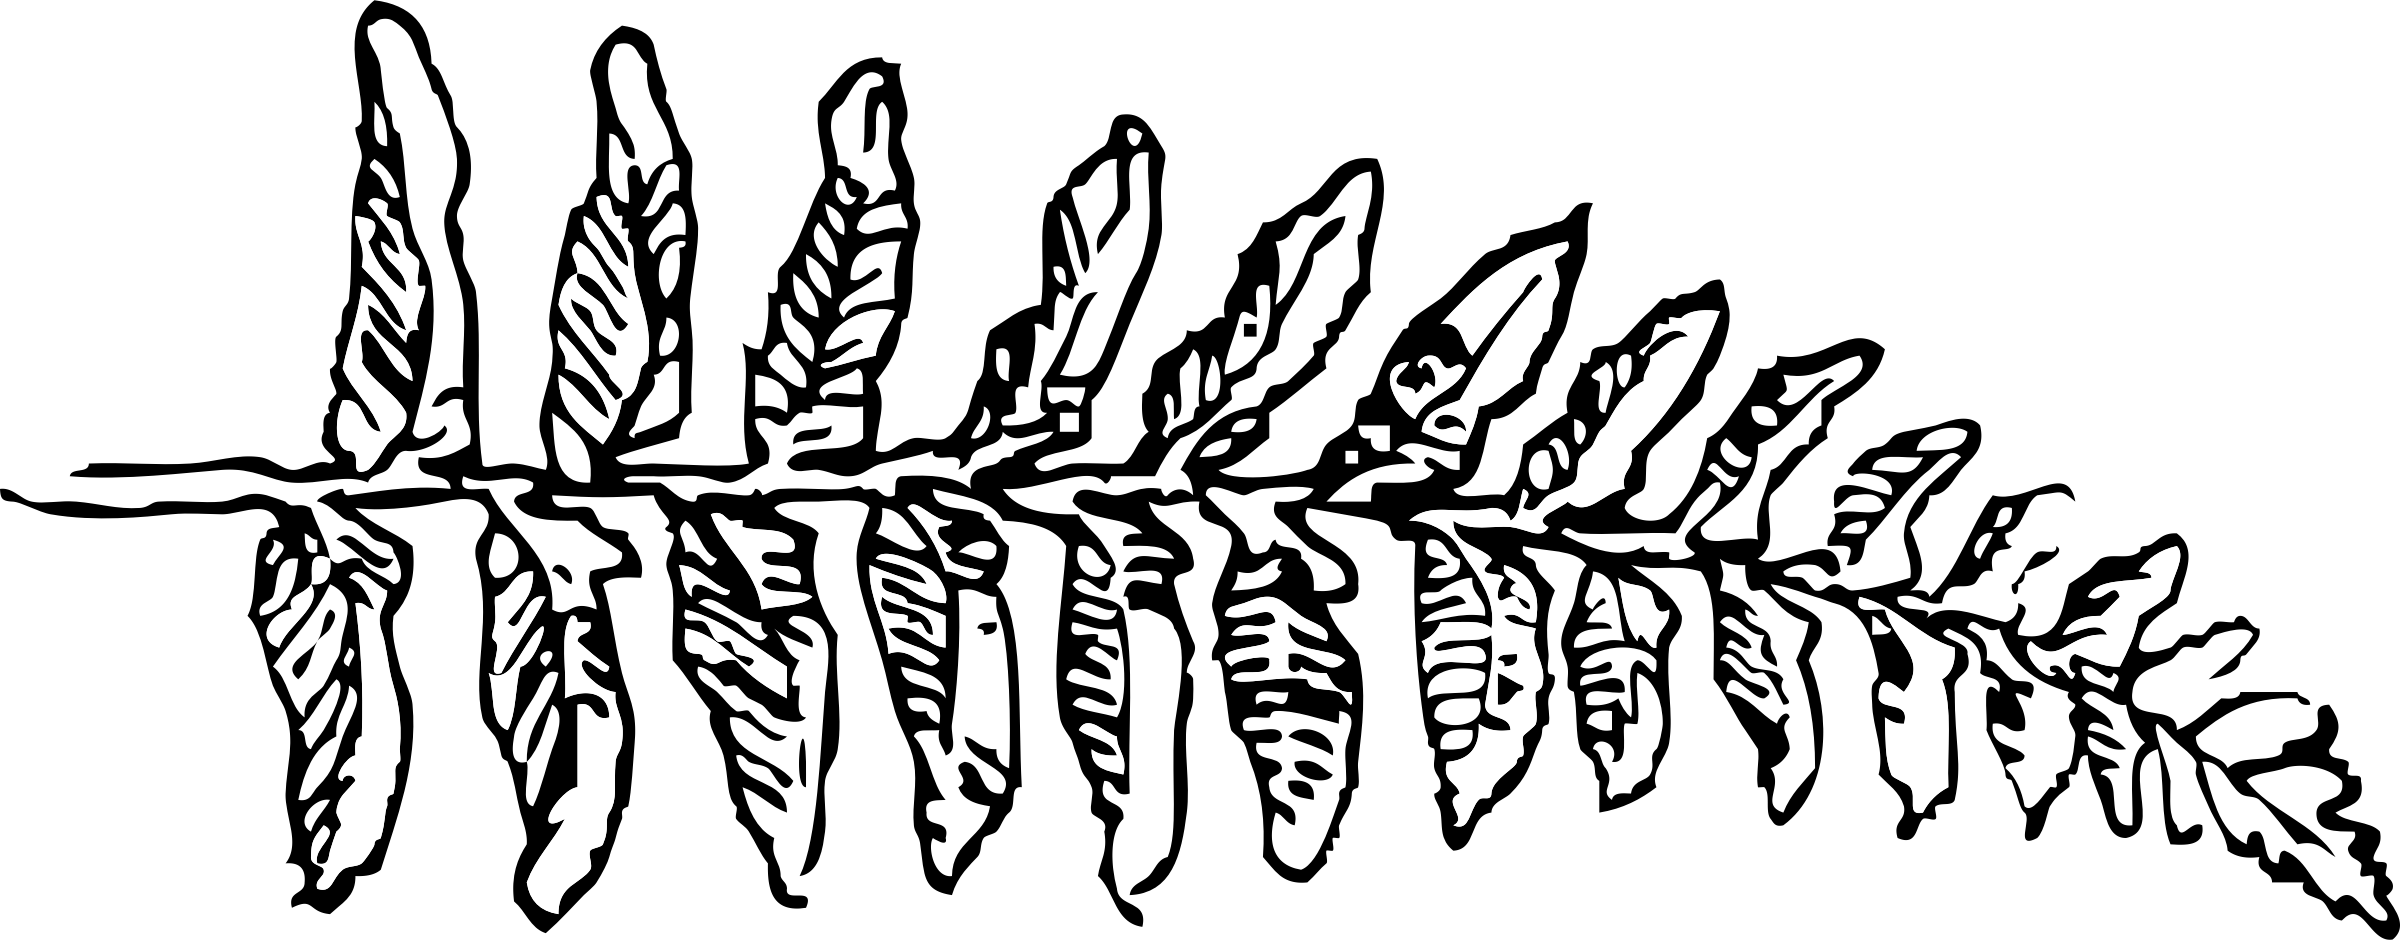 Free Fern Clip Art Black And White, Download Free Clip Art, Free.